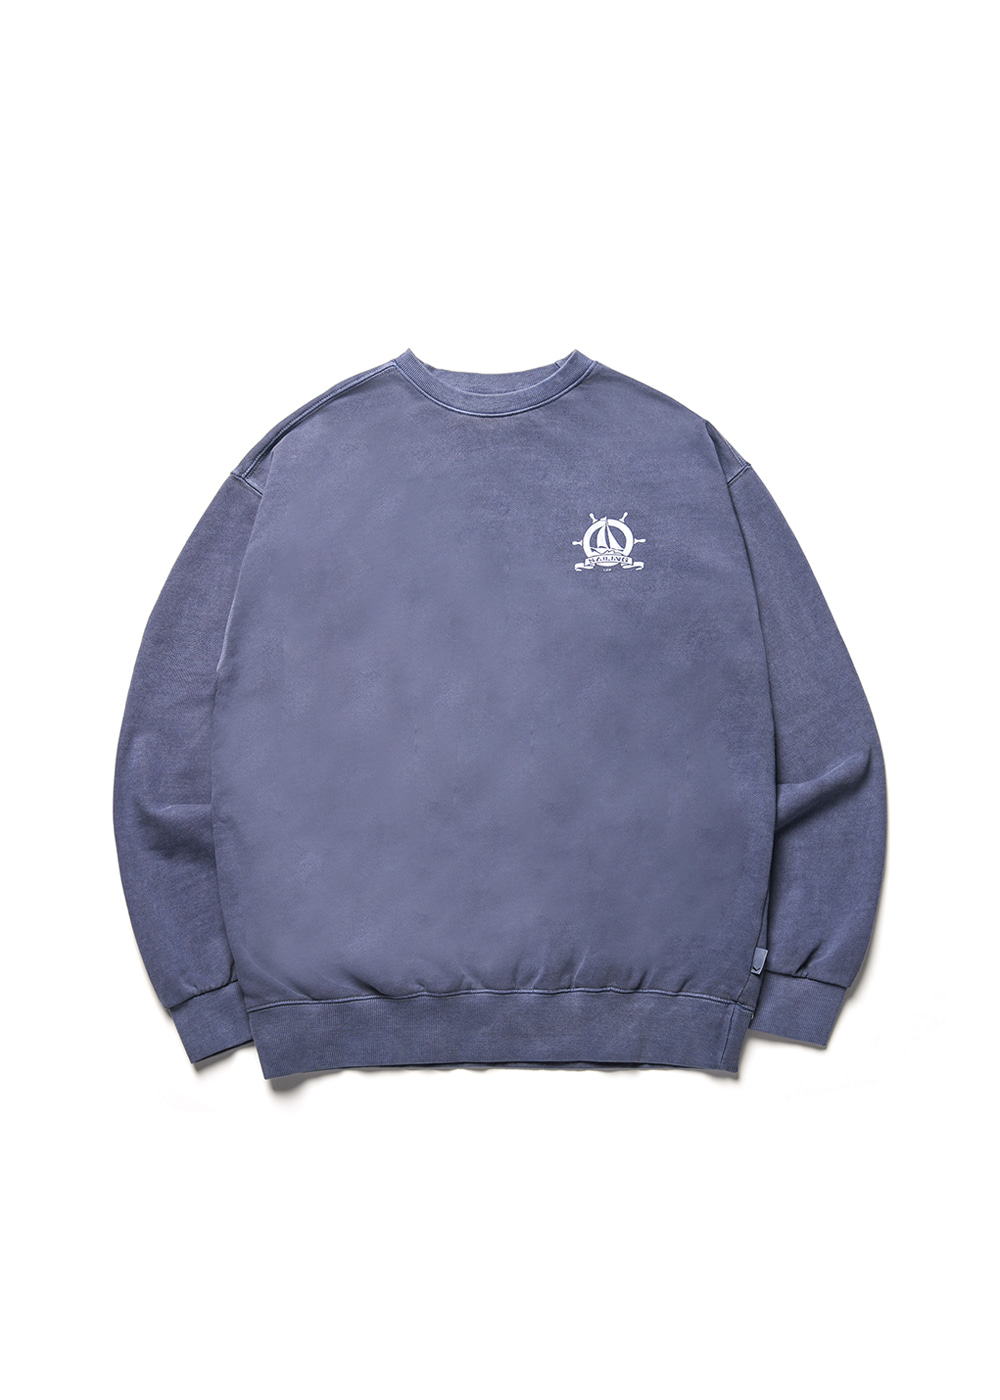 Pigment academy sweat shirt [navy]